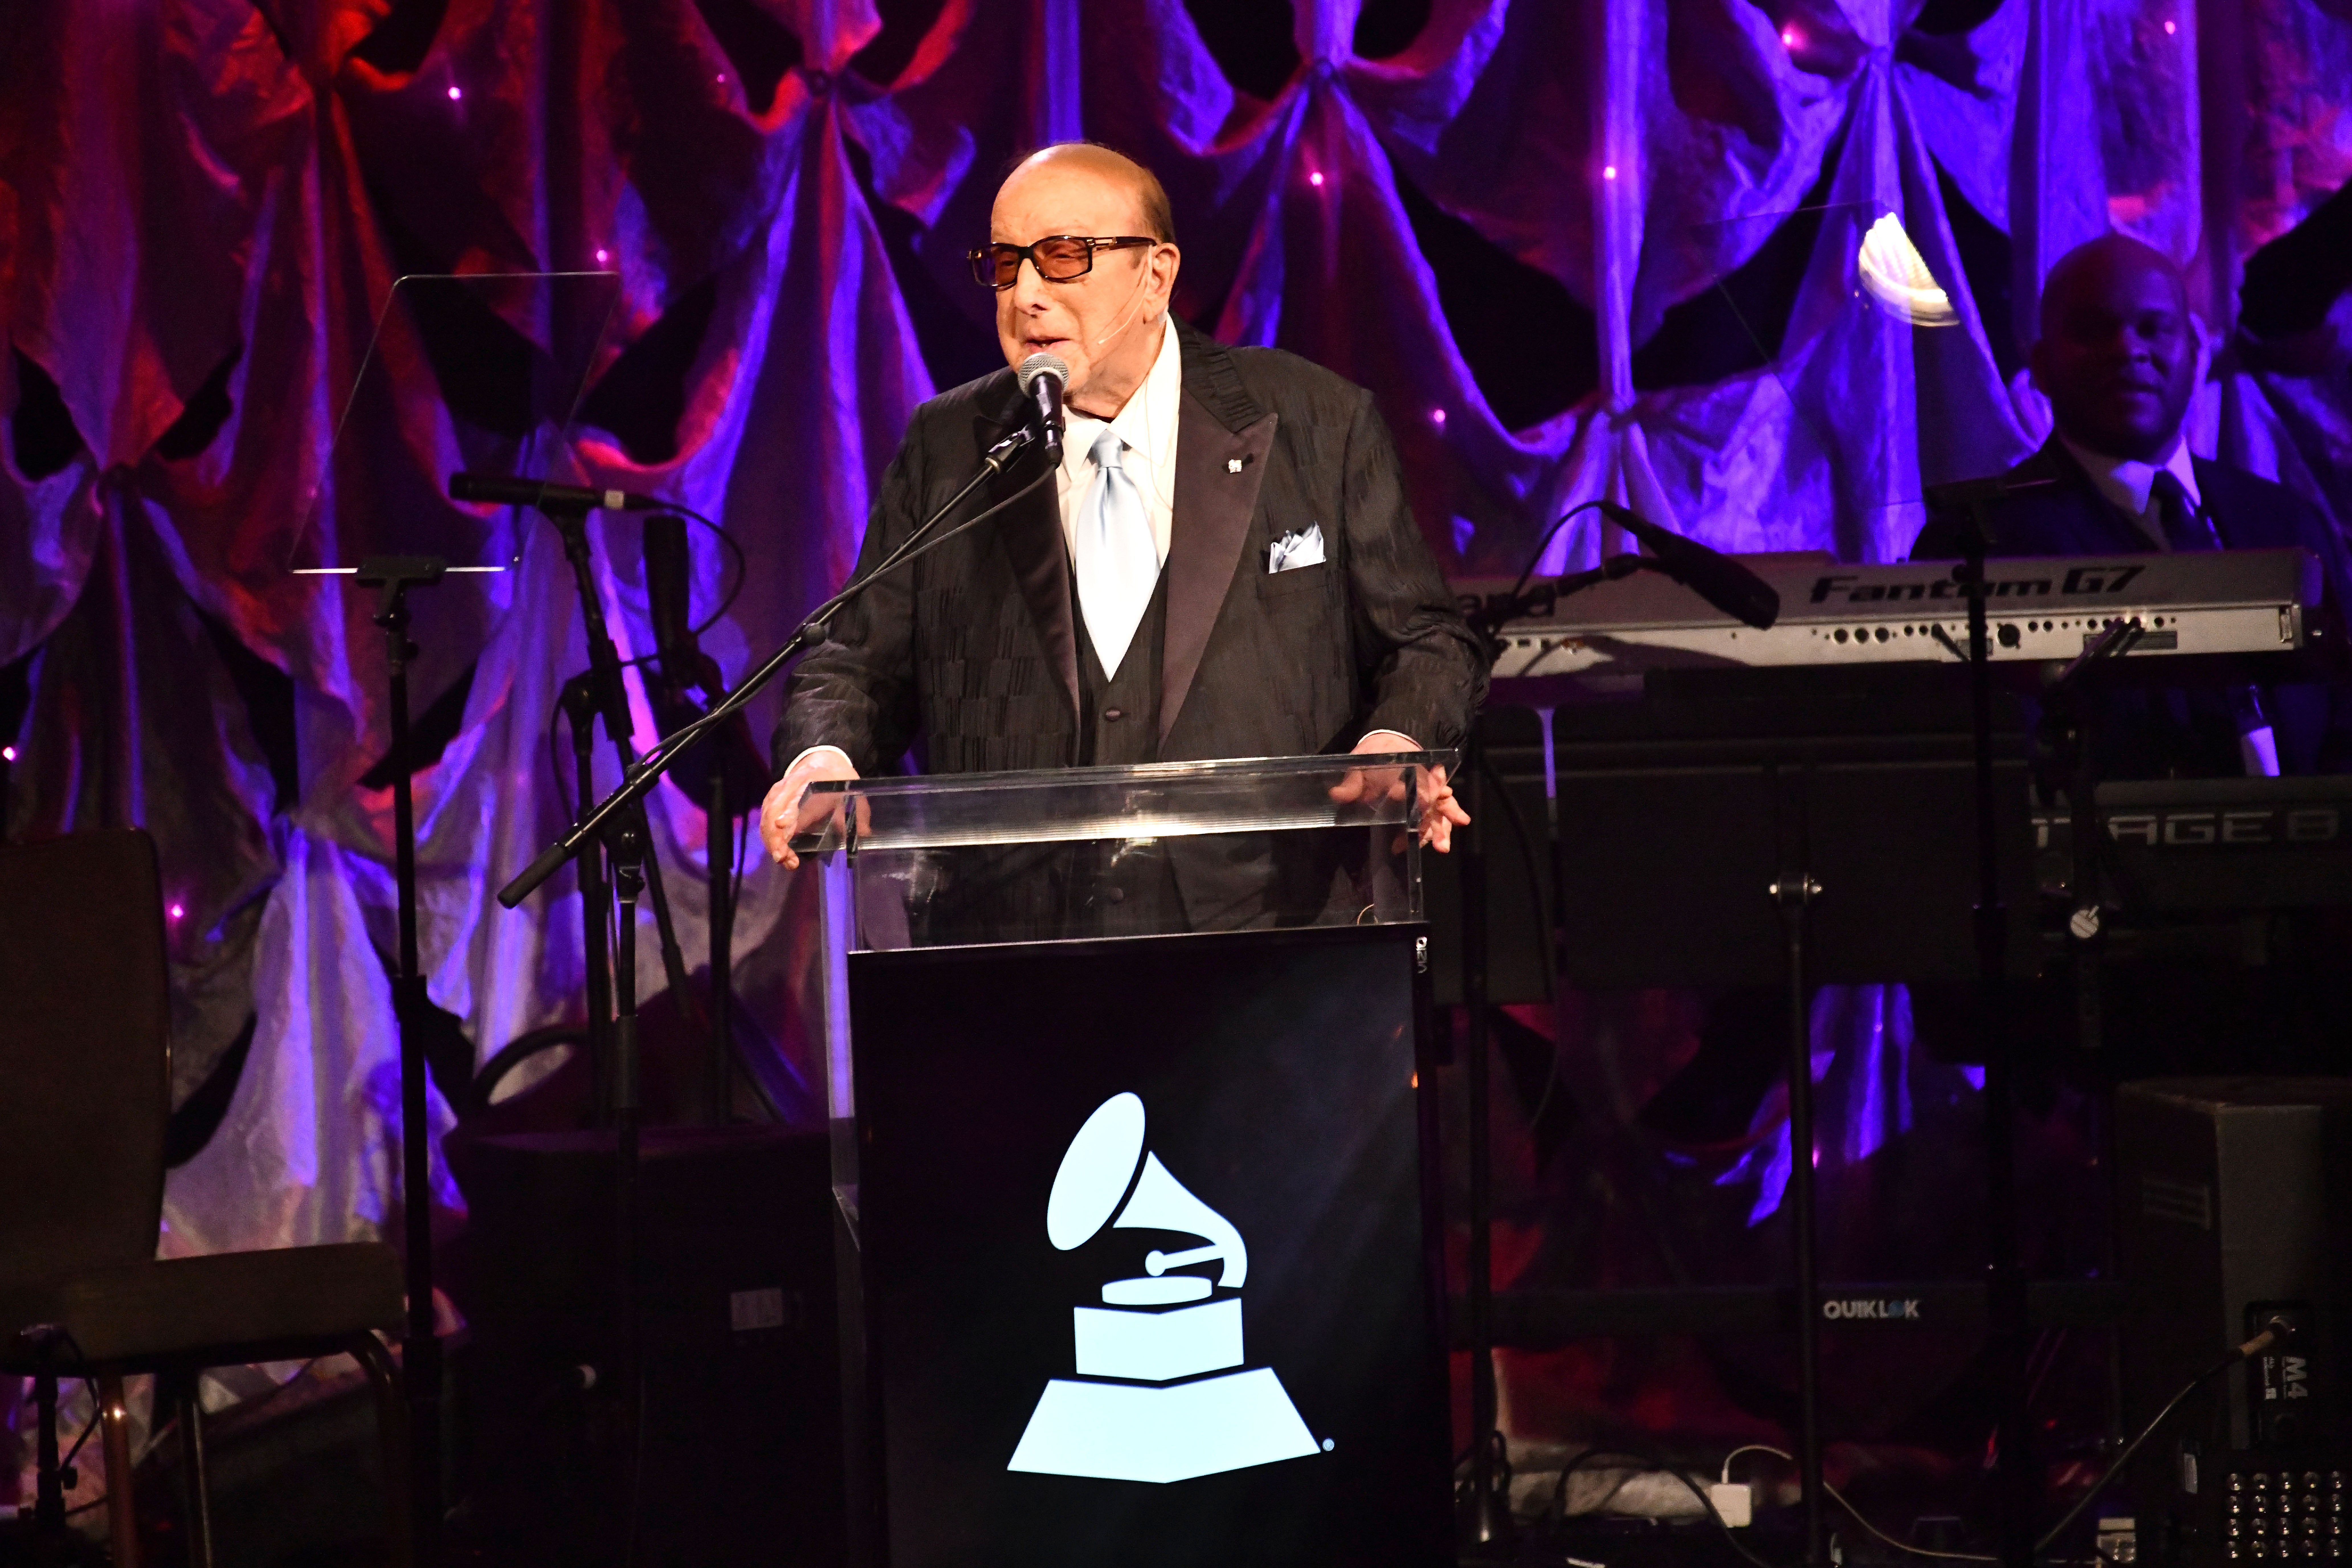 Musical Producer Clive Davis delivering a speech at the pre-Grammys party | Photo: Getty Images